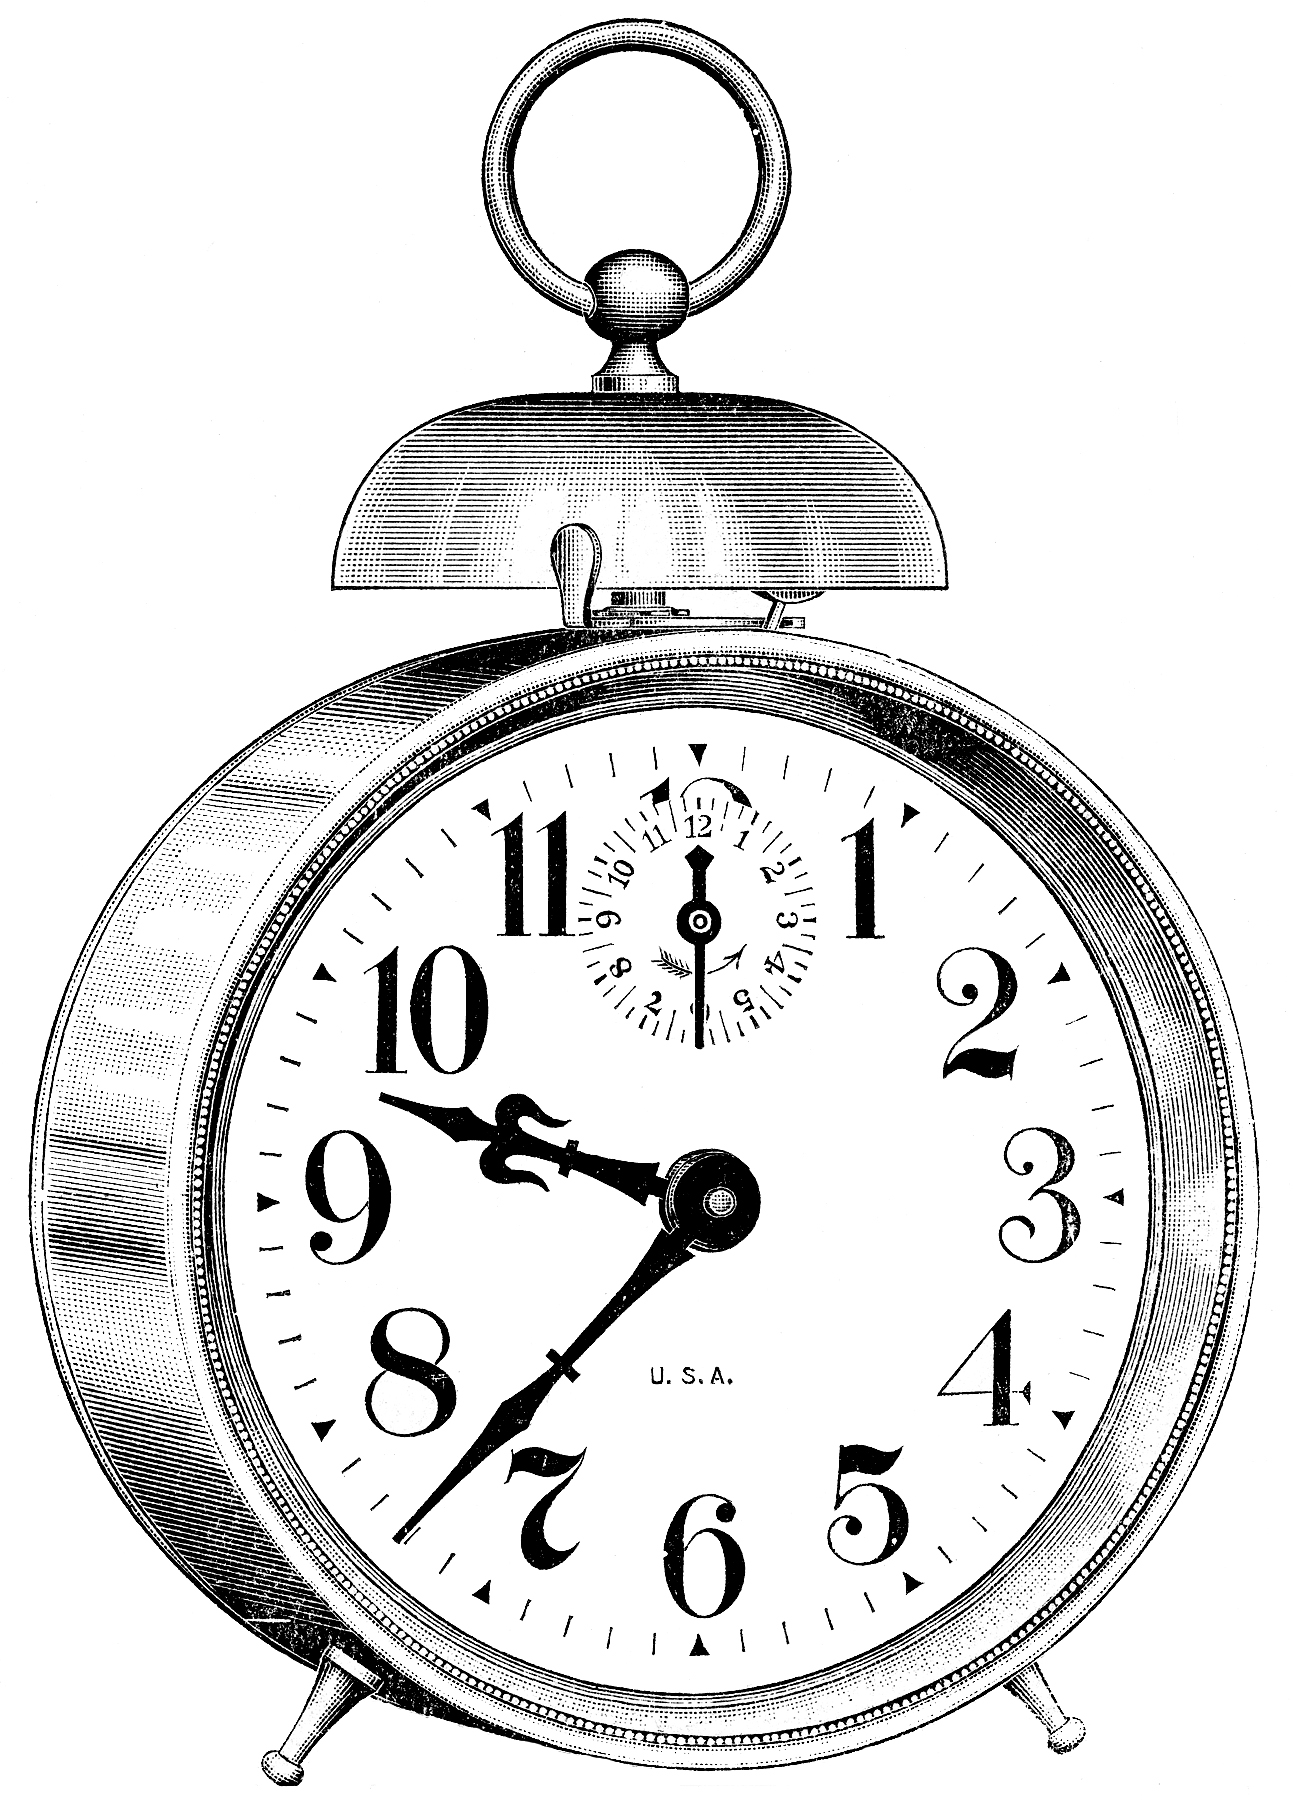 Antique clock clipart picture free download 8 Clock Graphics - Vintage Alarm Clocks etc - Updated! - The ... picture free download